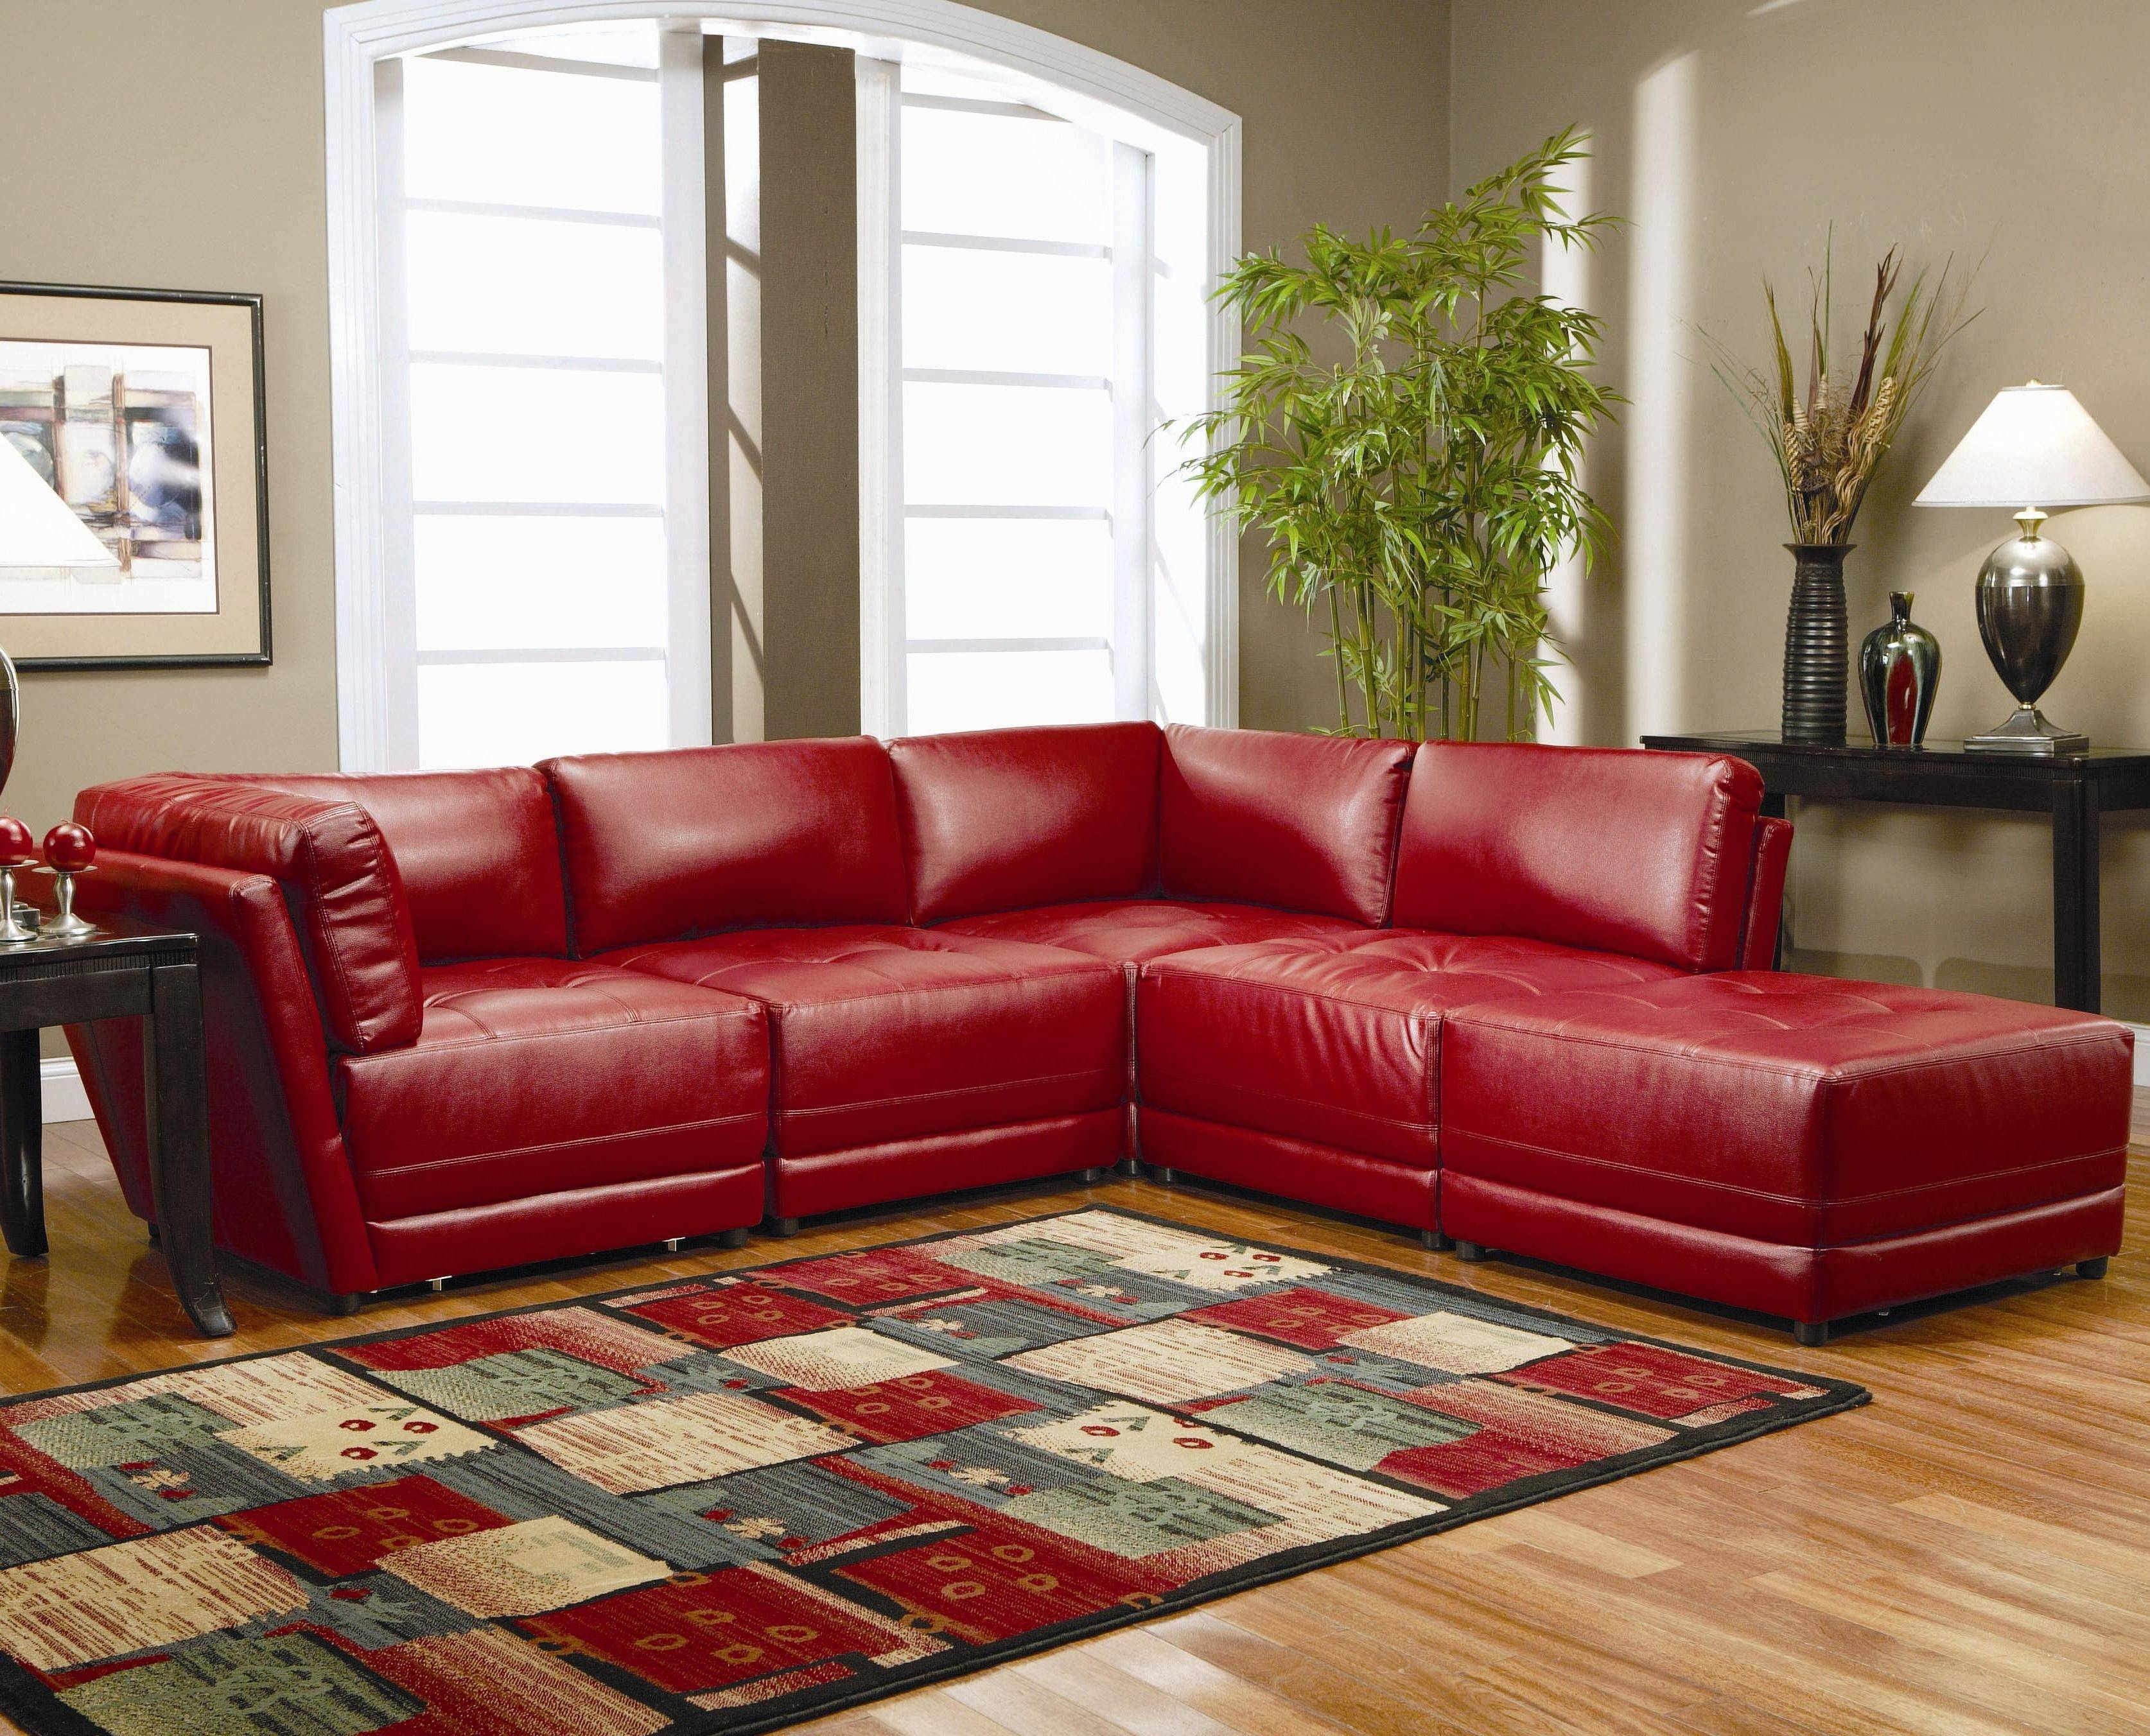 Sofas Center : Cozy Sectional Sofa With Chaise And Ottoman About in Goose Down Sectional Sofa (Image 11 of 25)